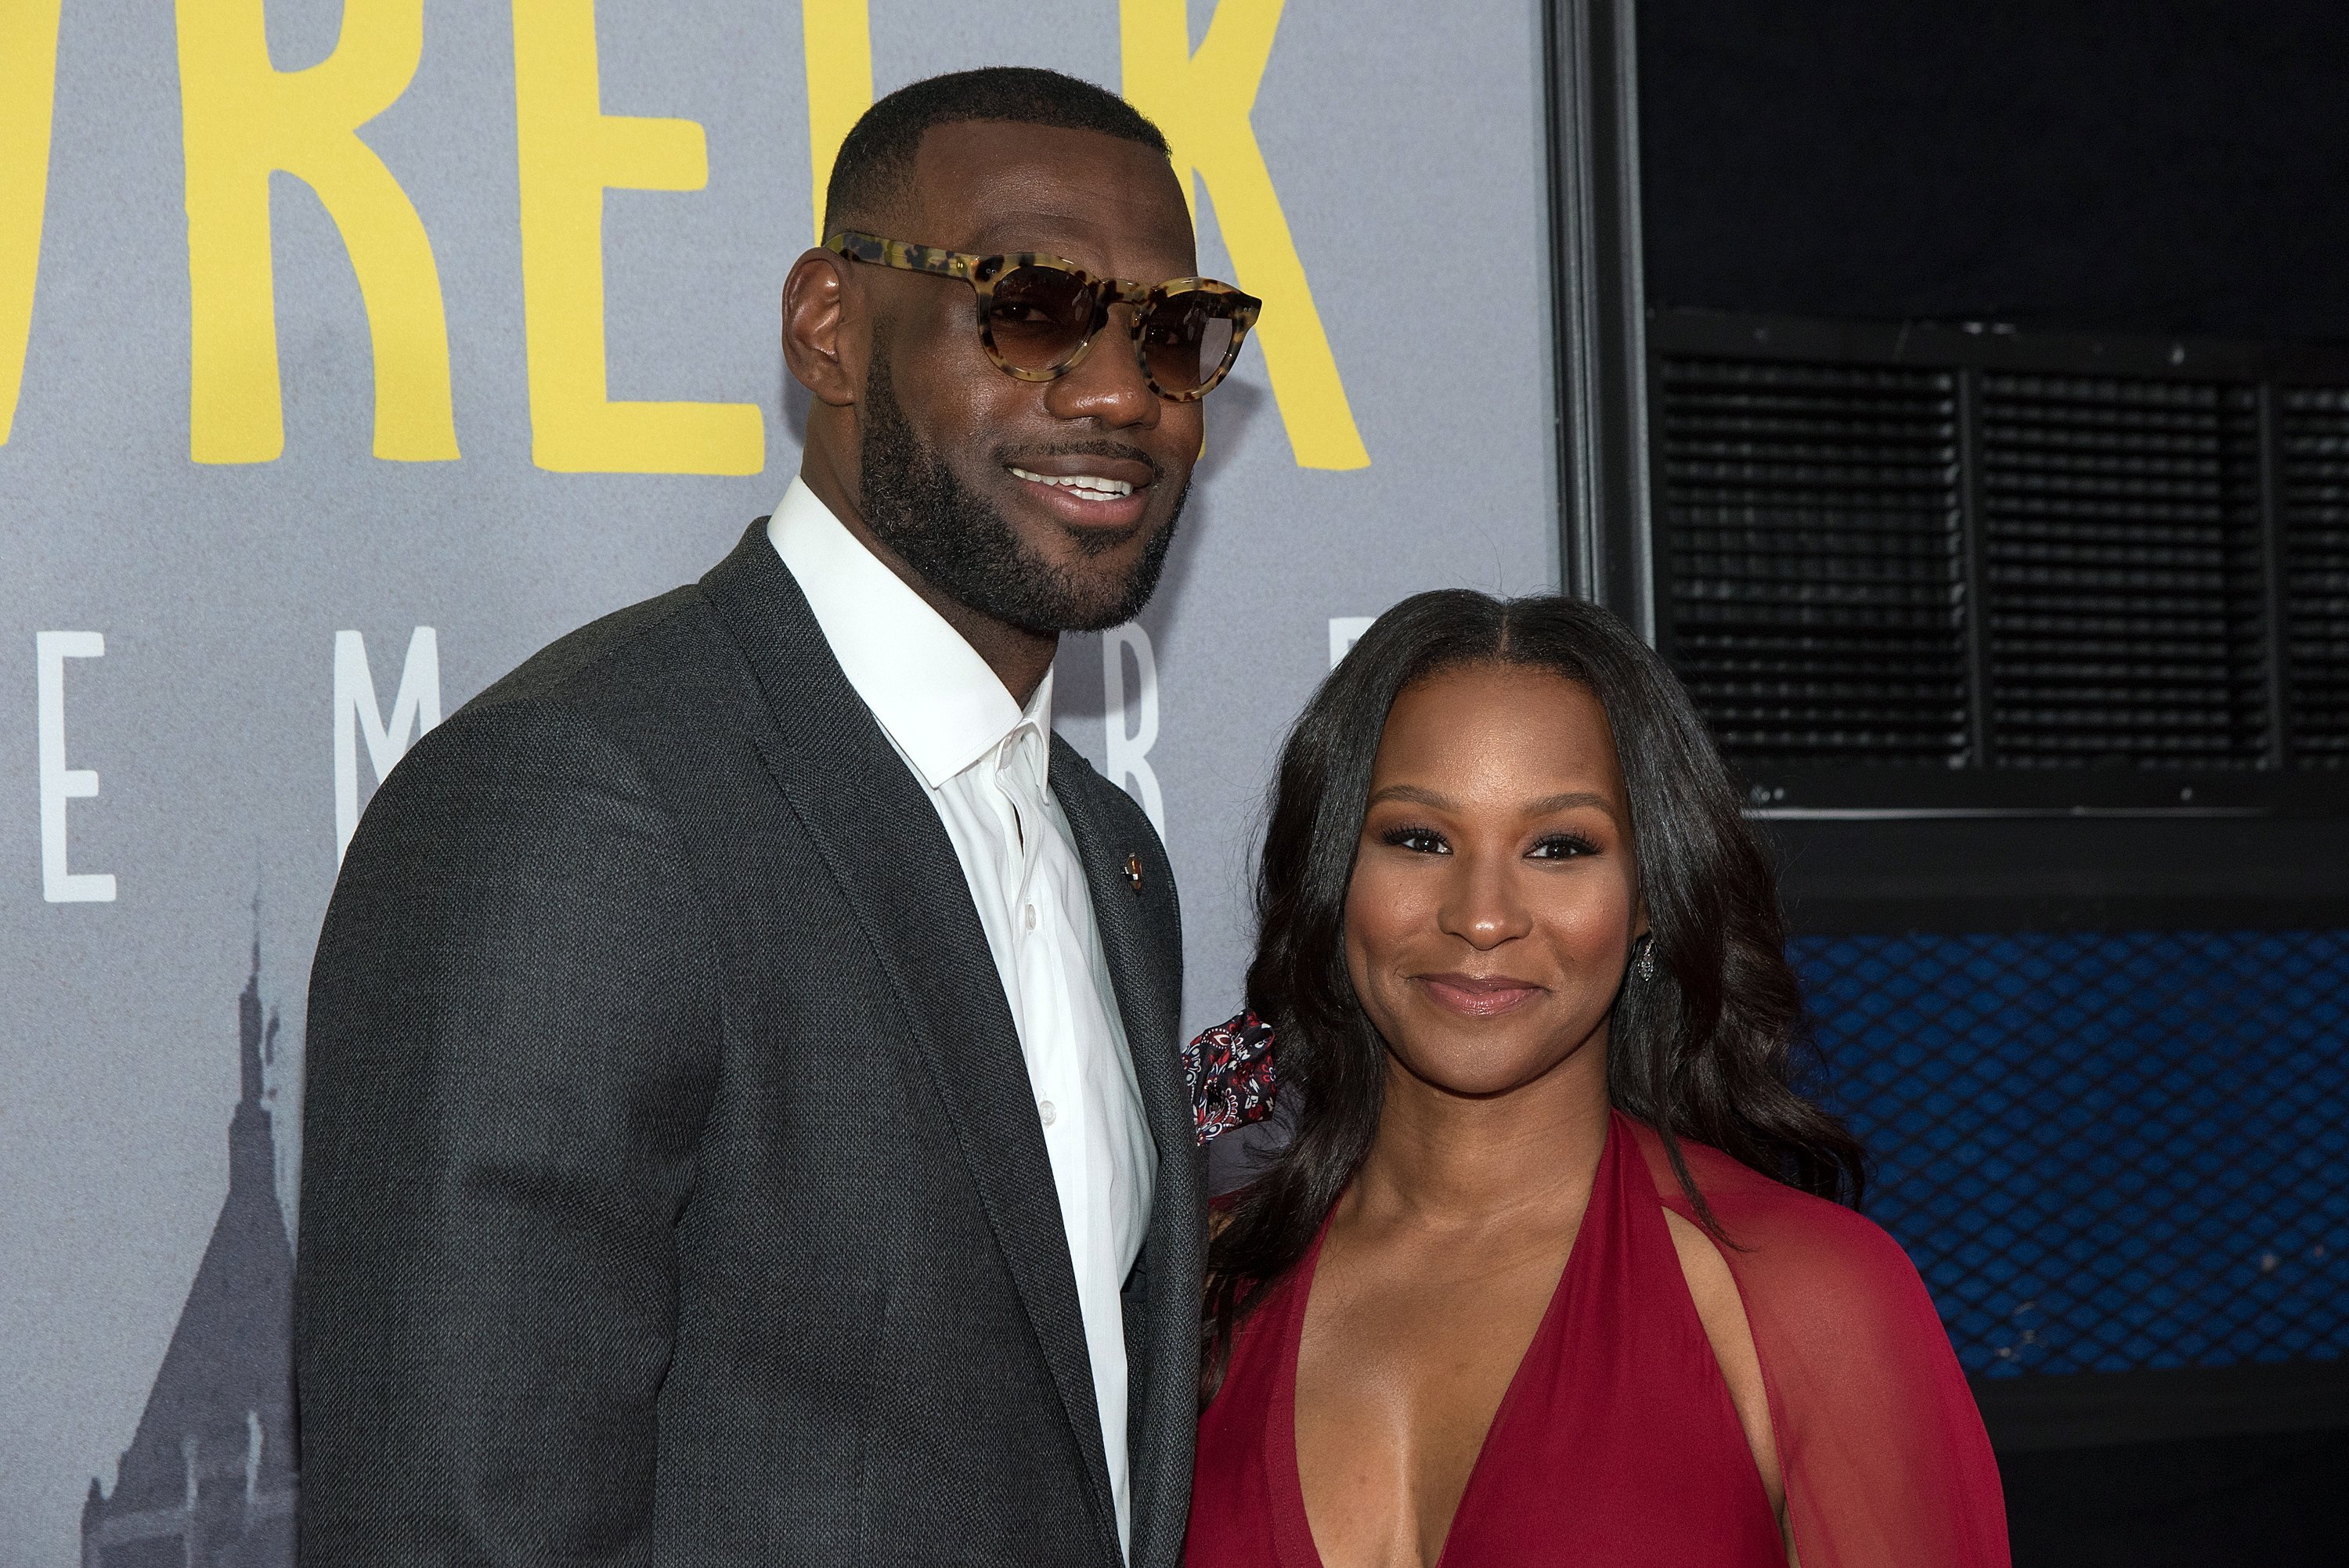 """LeBron & Savannah James at the """"Trainwreck"""" New York Premiere on July 14, 2015 in New York City 